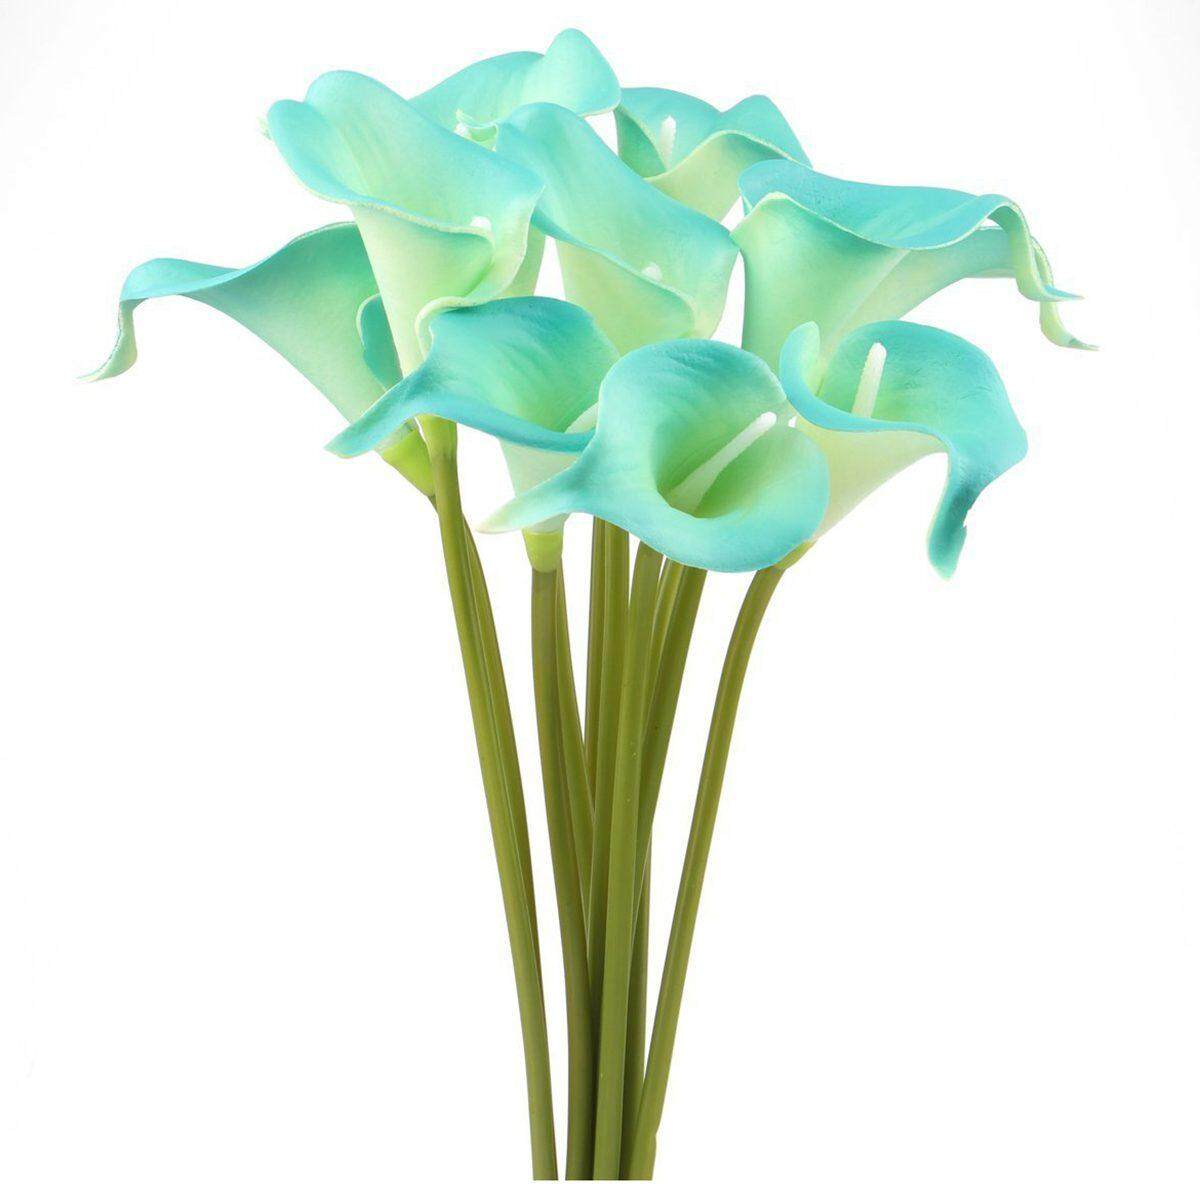 Home artificial flowers plants buy home artificial flowers calla lily bridal wedding bouquet head real touch flower bouquets 10 blue izmirmasajfo